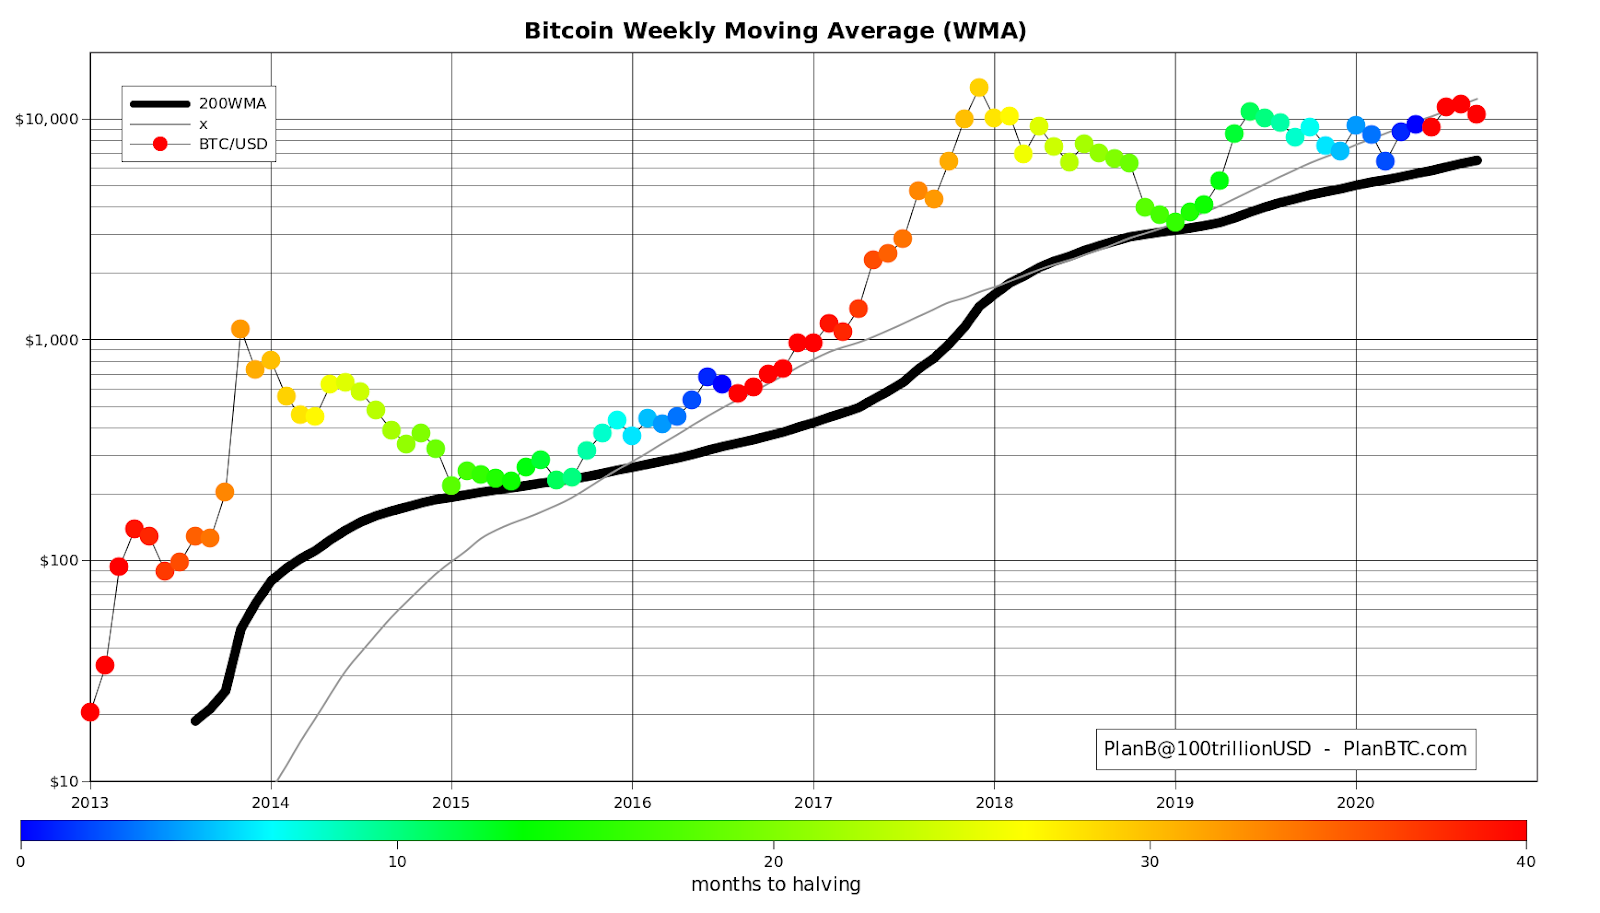 Bitcoin price vs. 200-week moving average historical chart